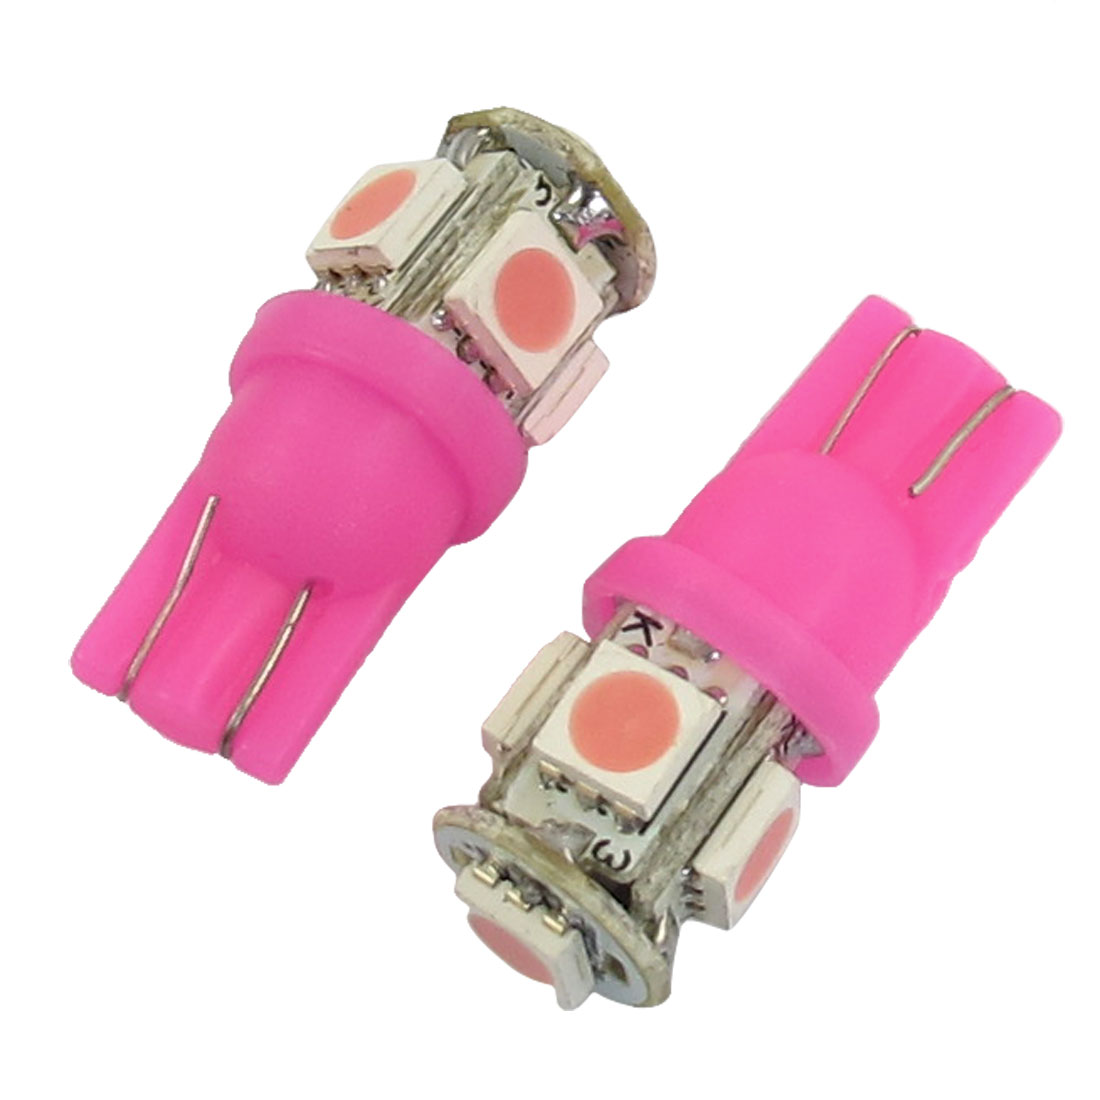 Vehicle-T10-Pink-5050-SMD-5-LED-Turn-Signal-Light-Bulbs-12VDC-2pcs